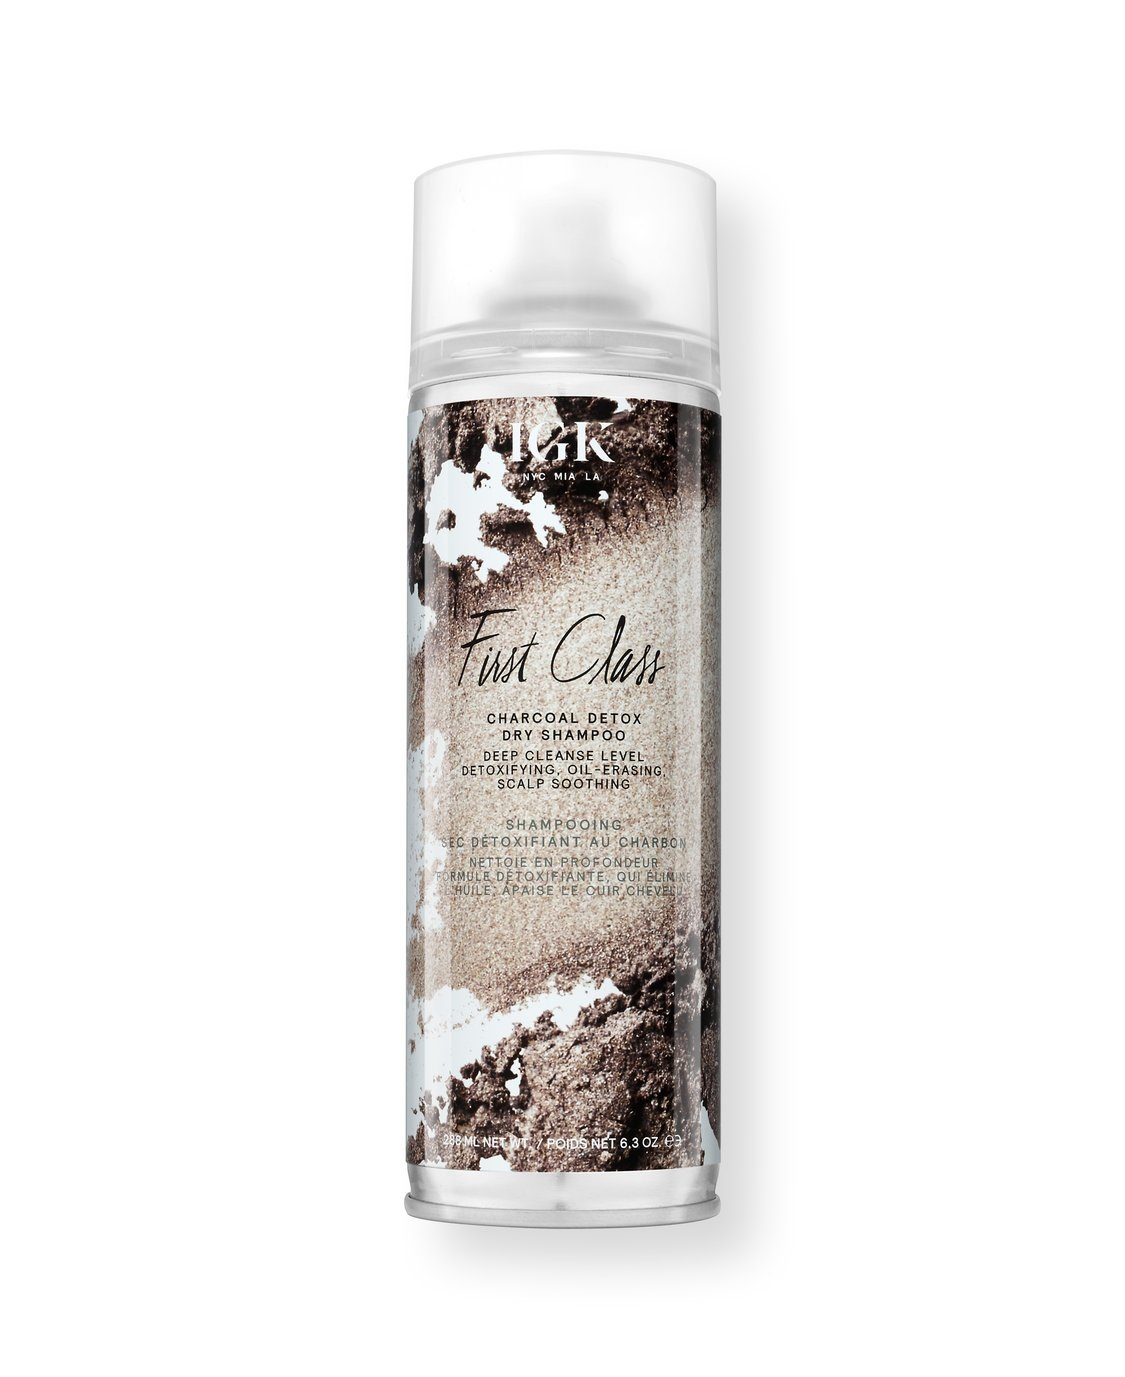 IGK First Class Charcoal Detox Dry Shampoo